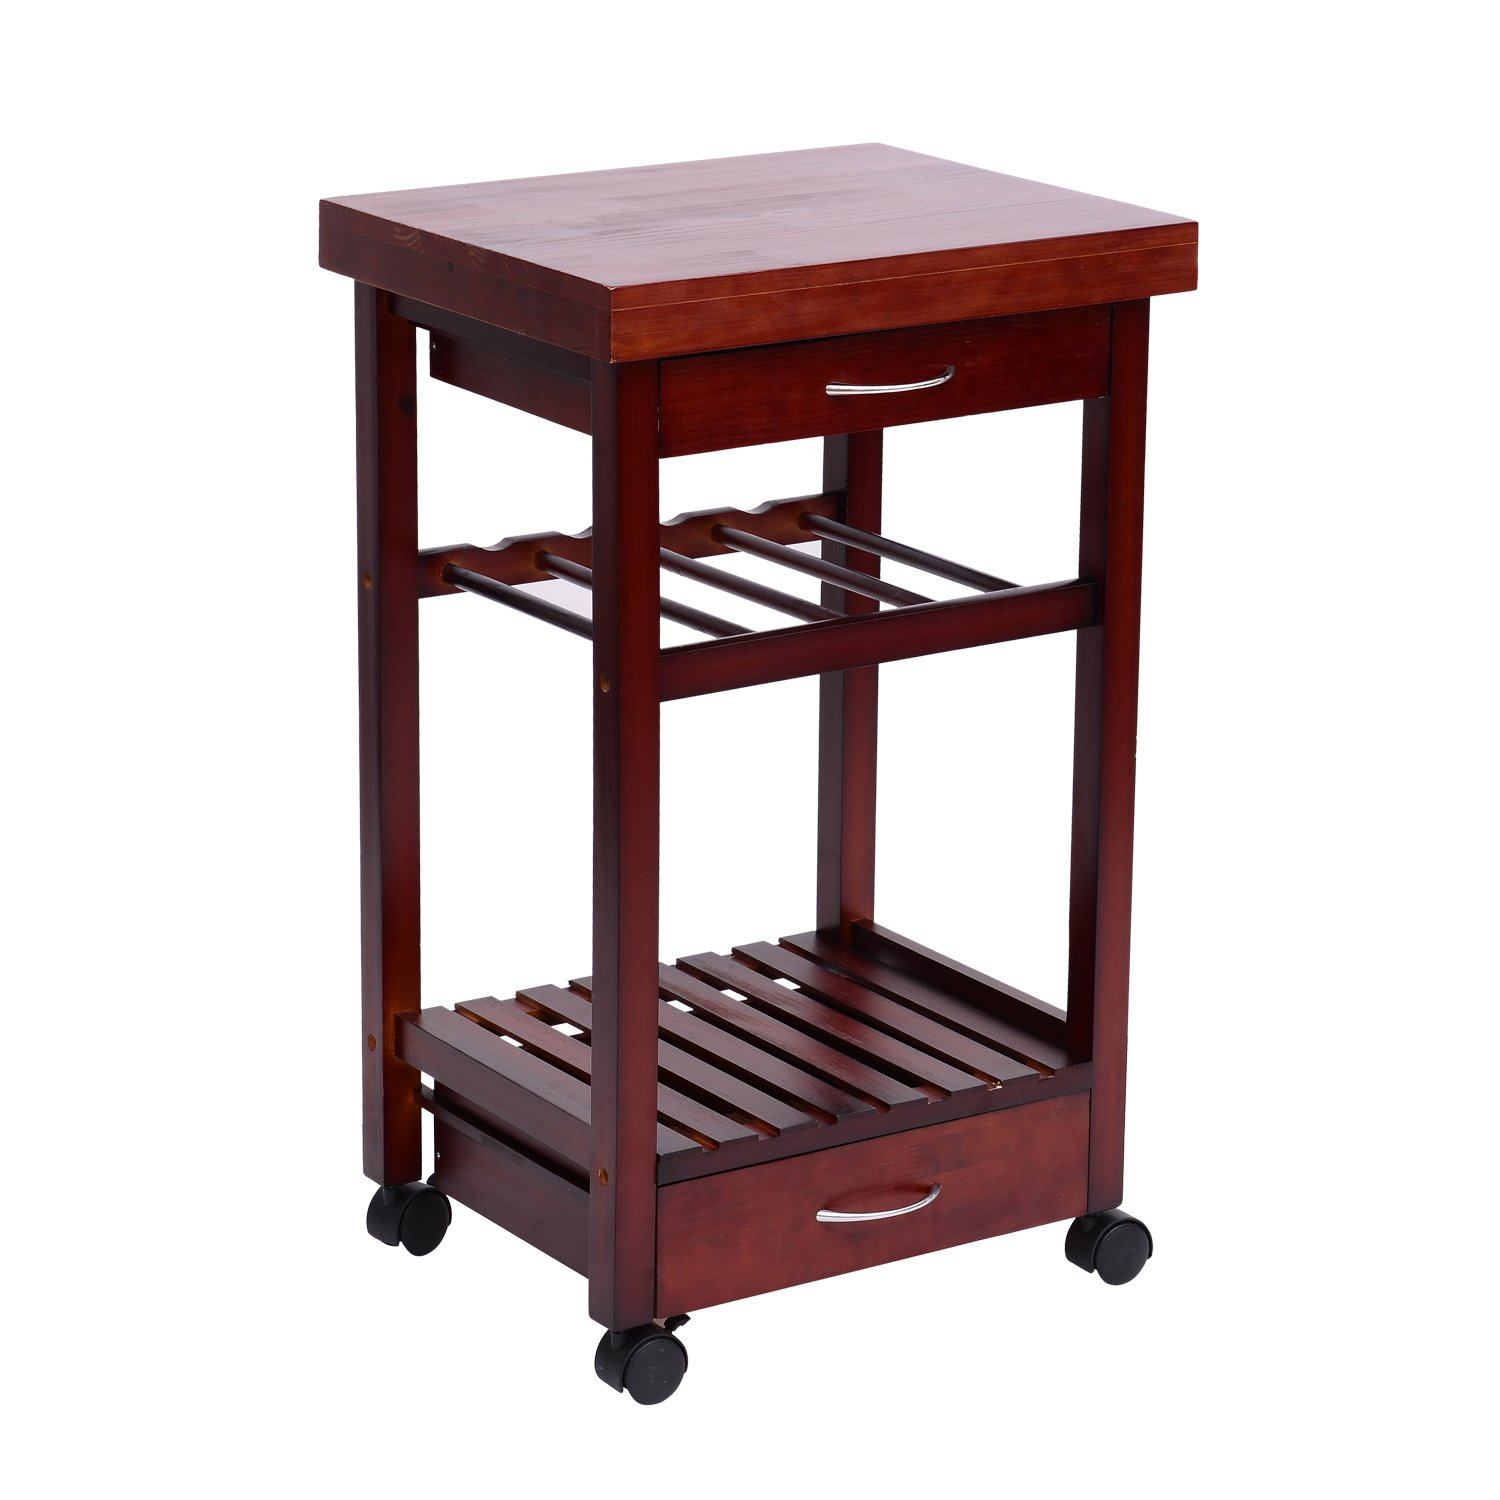 Festnight Kitchen Trolley Dining Storage Cart with Drawers and Wine Rack,Vintage Style by Festnight (Image #5)